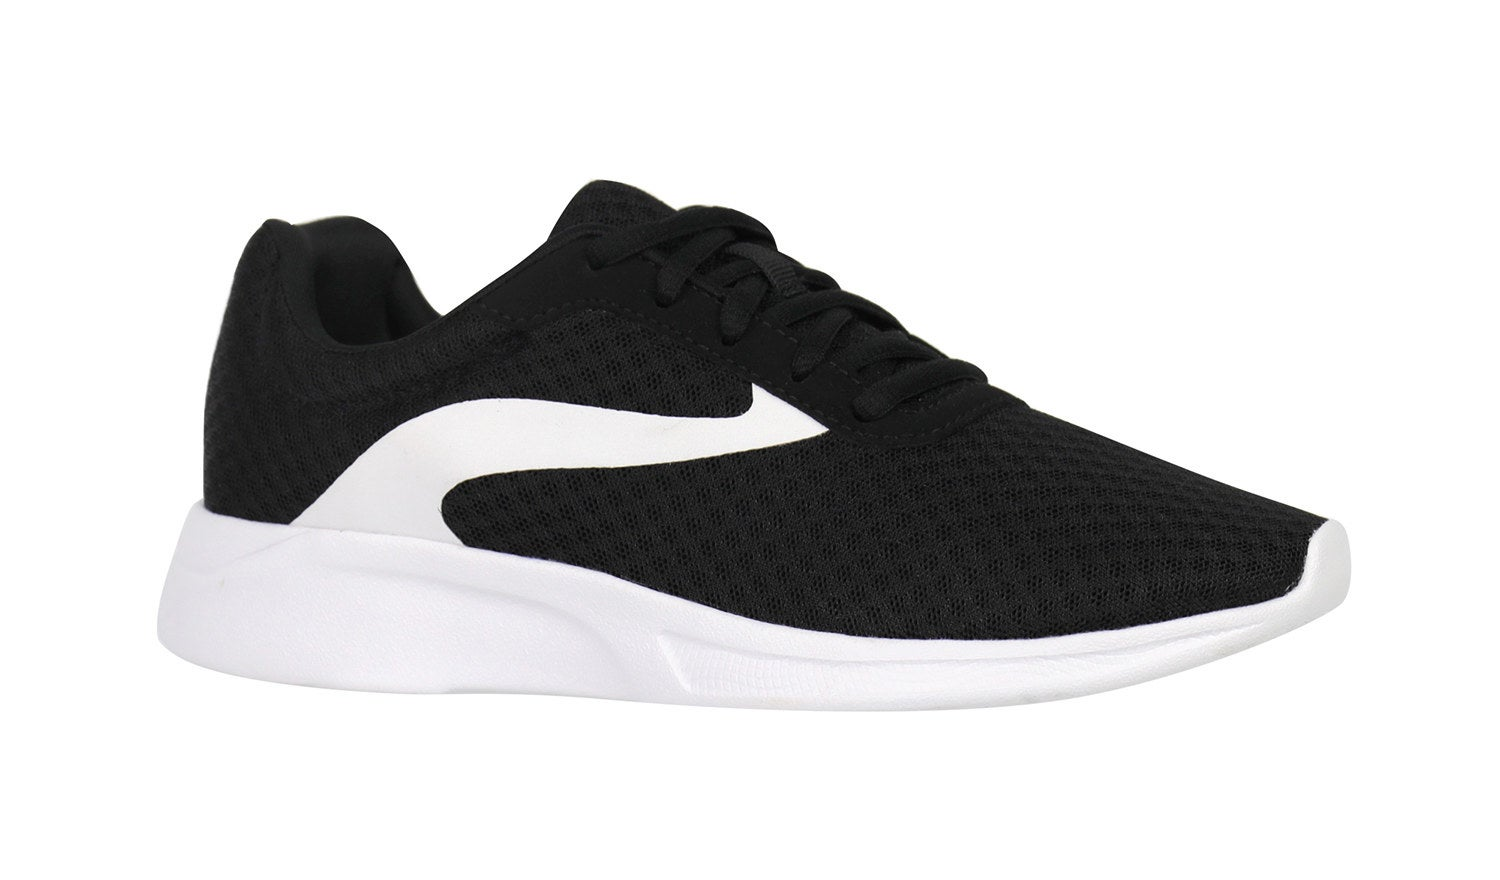 The sneakers in black and white